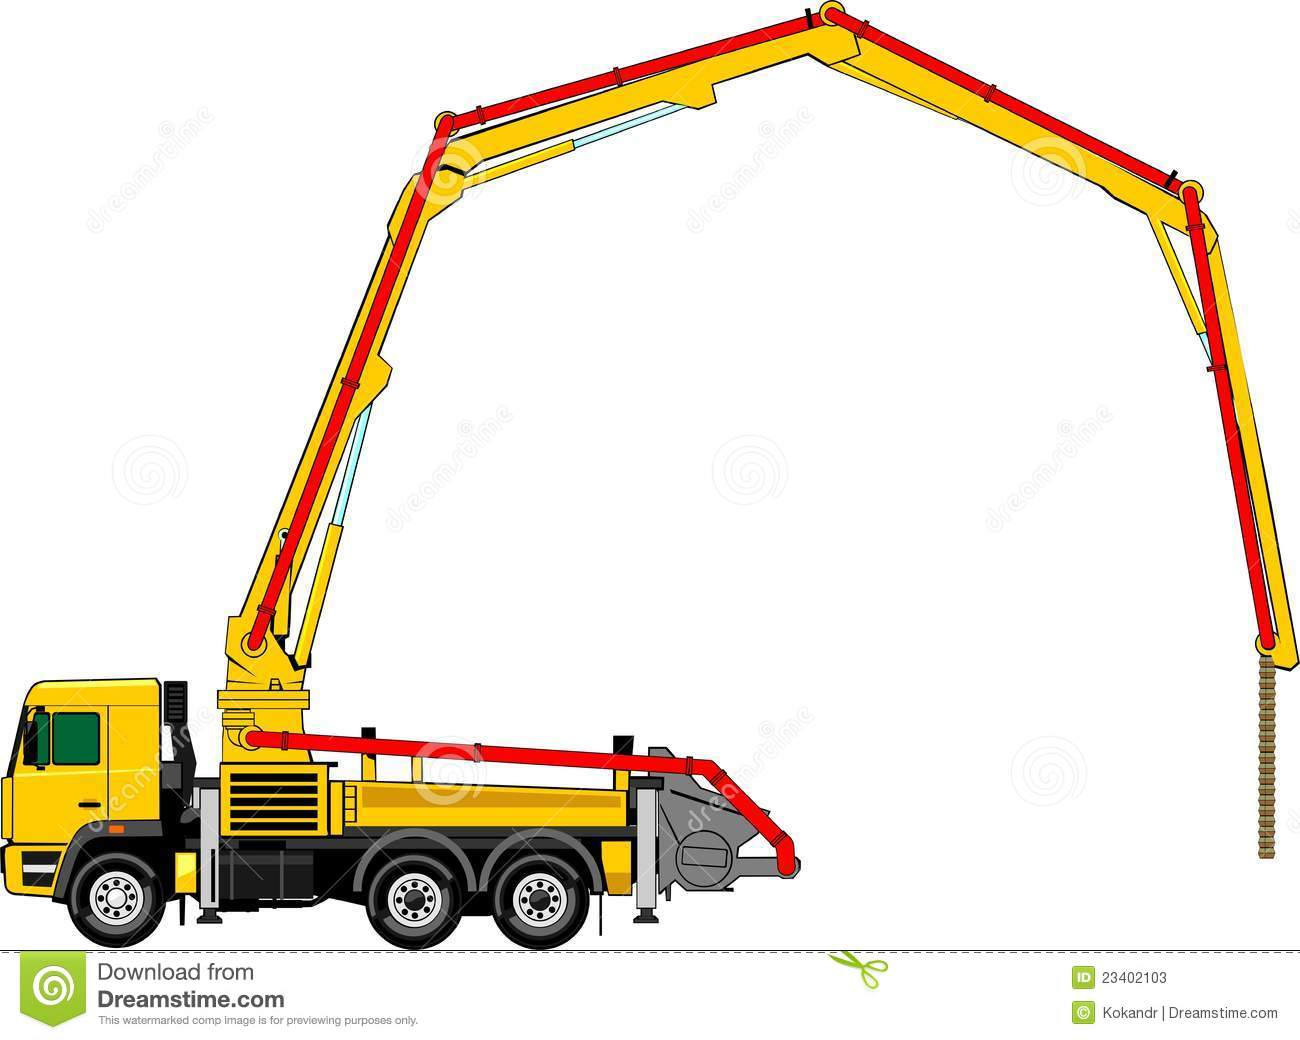 Stock Photos Concrete Pump Image23402103 on tube audio mixer